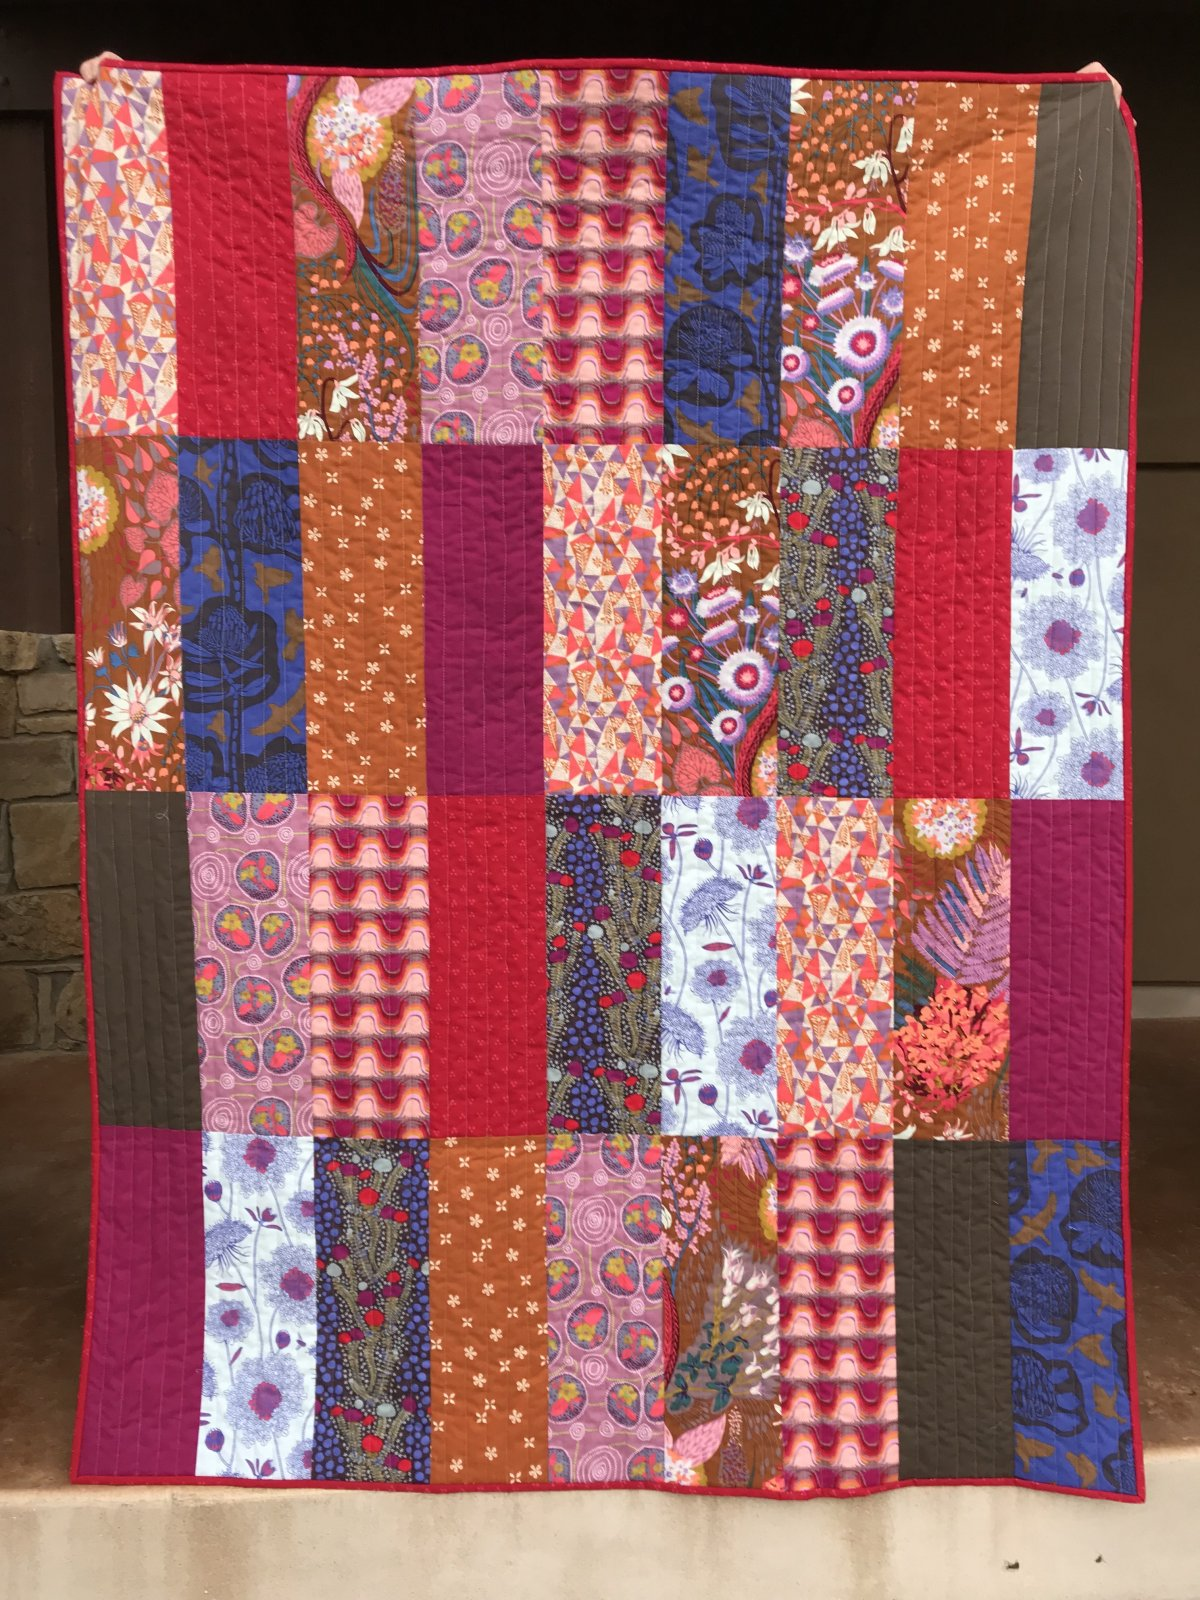 Sweet Dreams Quilt Kit (excludes Binding and Backing)